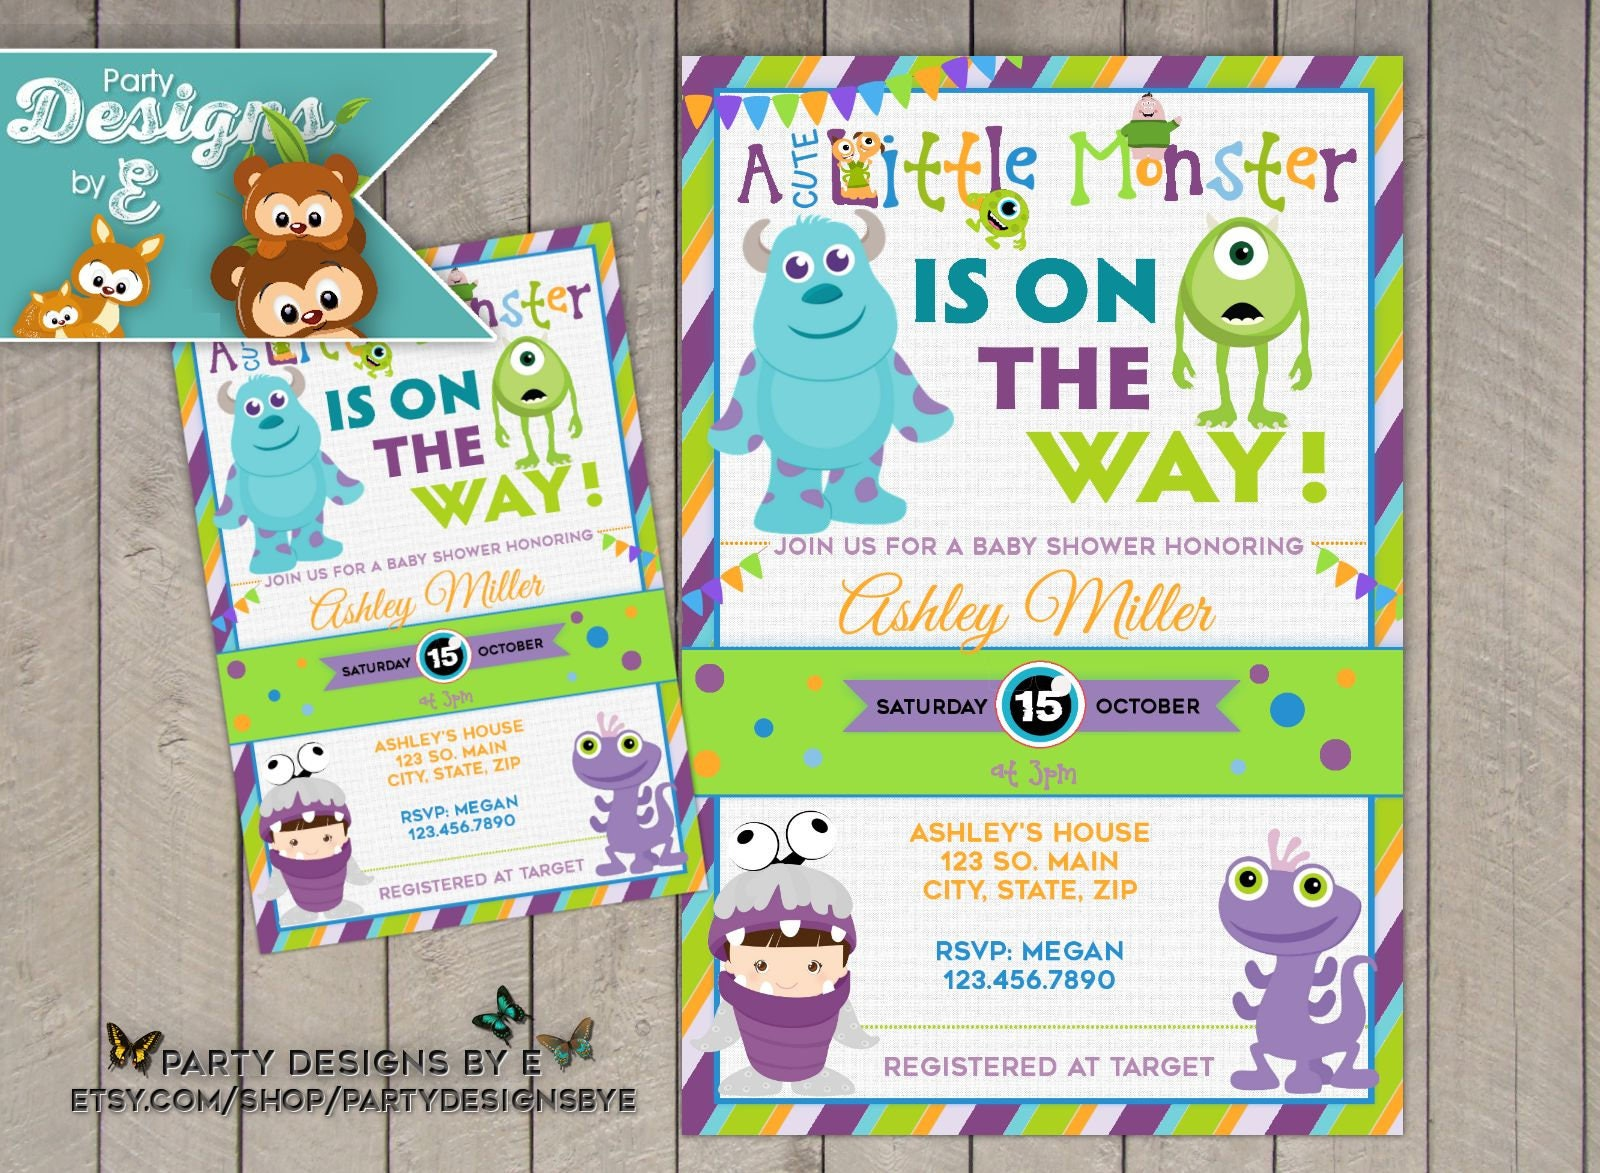 Monsters Inc. Baby Shower Invitation A Little Monster baby